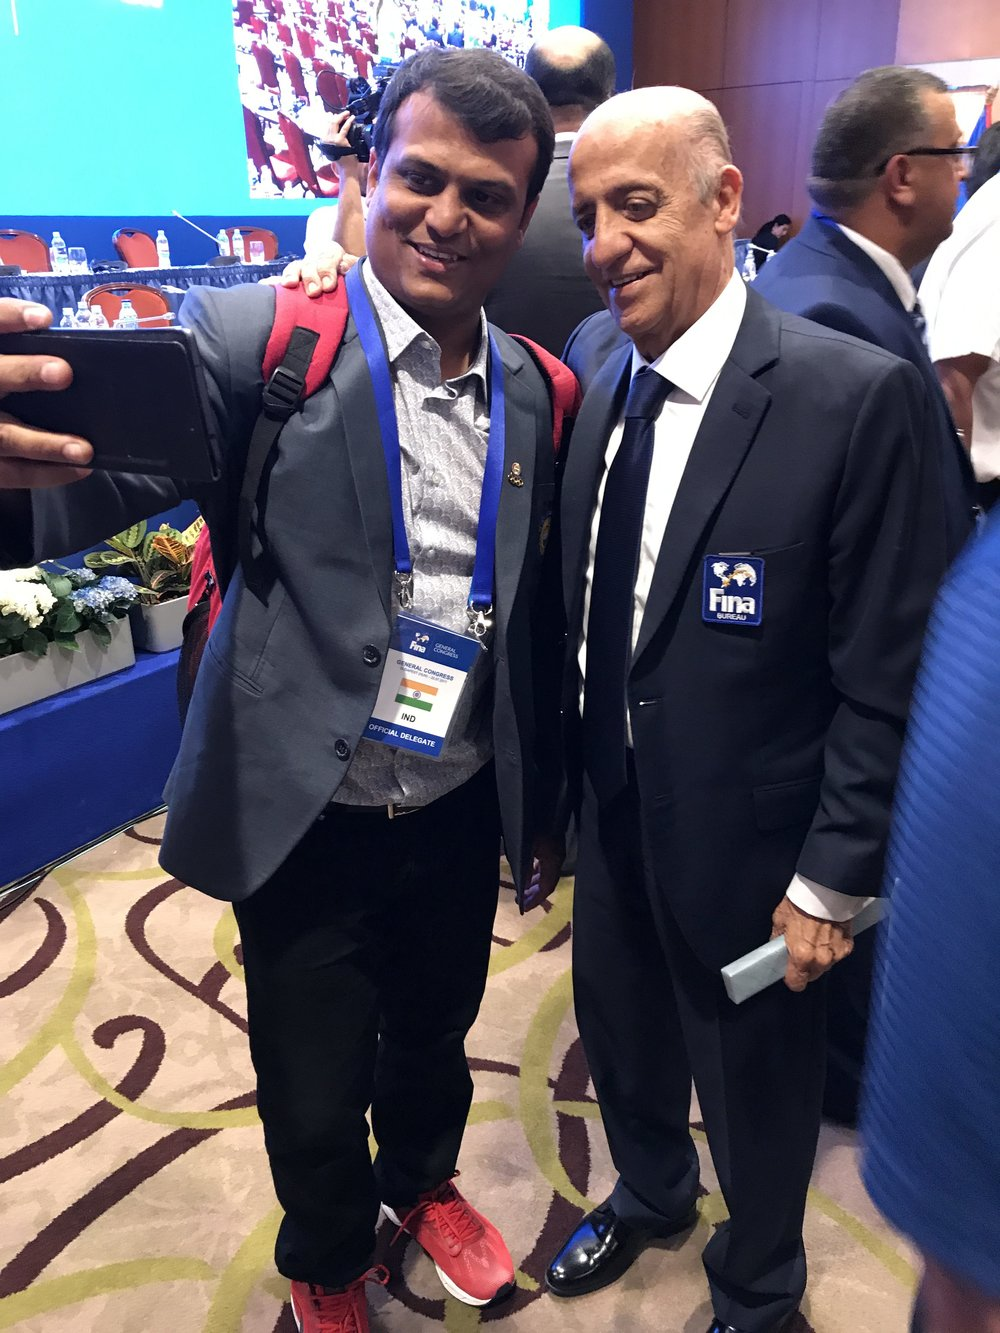 Selfie moment: FINA president Julio Maglione of Uruguay, right, with a delegate from India moments after Saturday's election